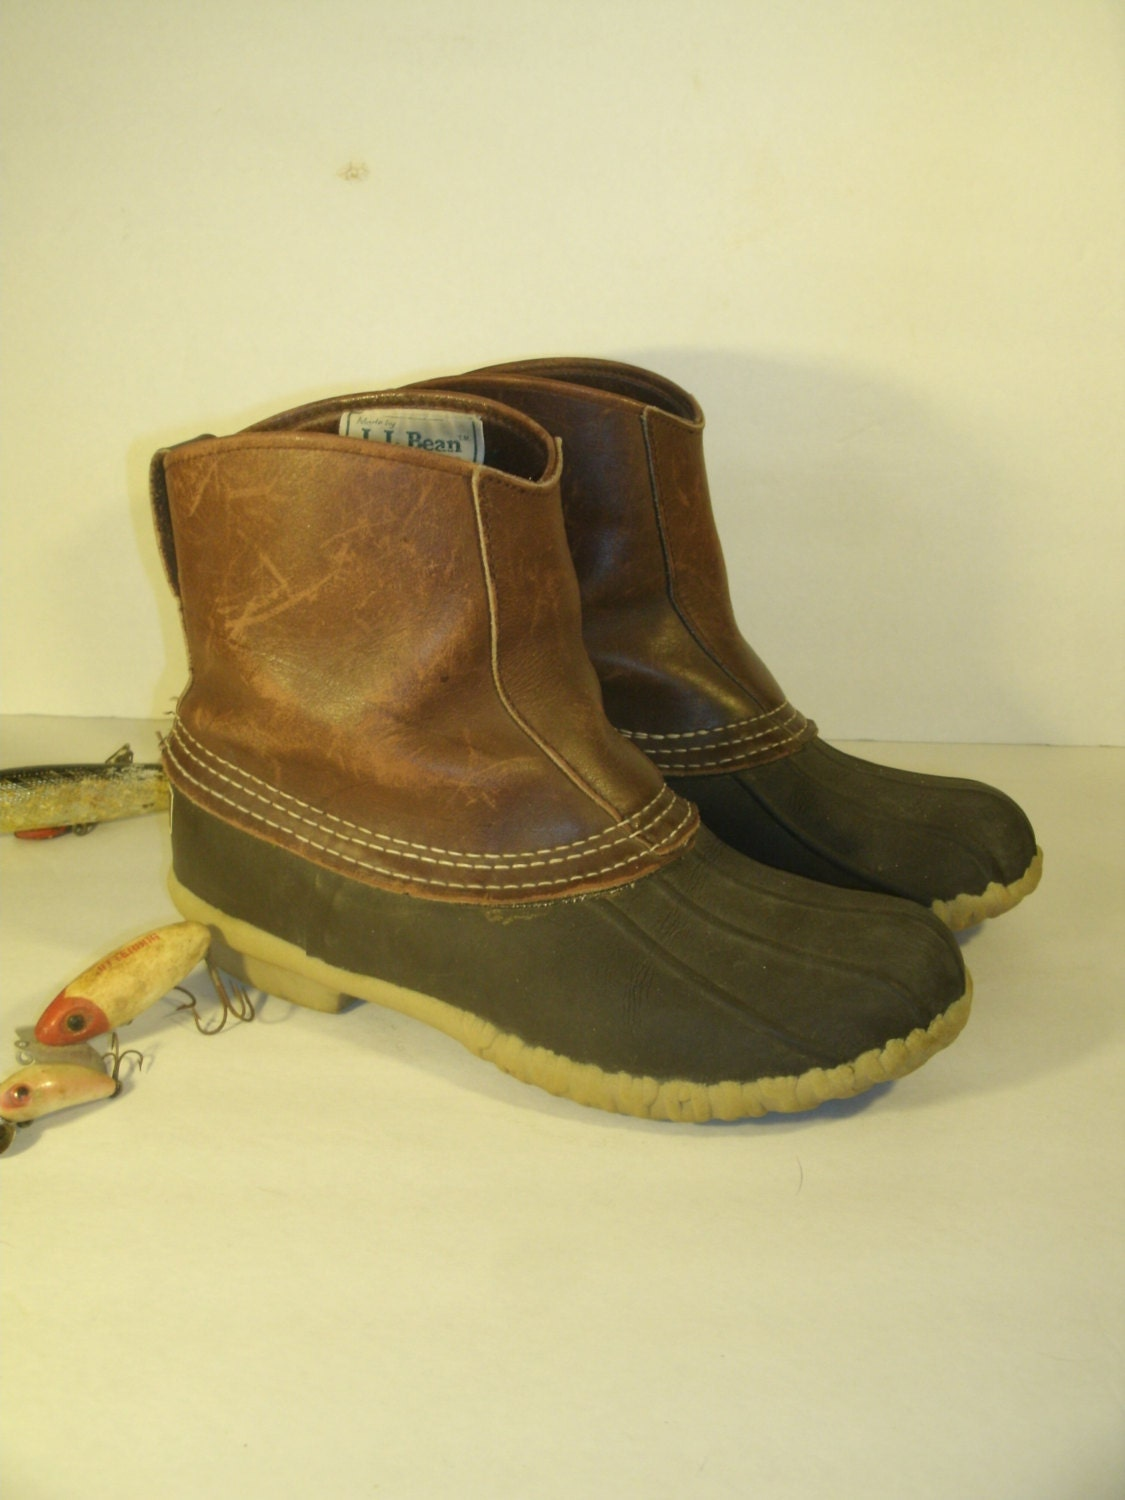 Vintage LL Bean Slip On Maine Hunting Shoe Duck Boots Dark Brown